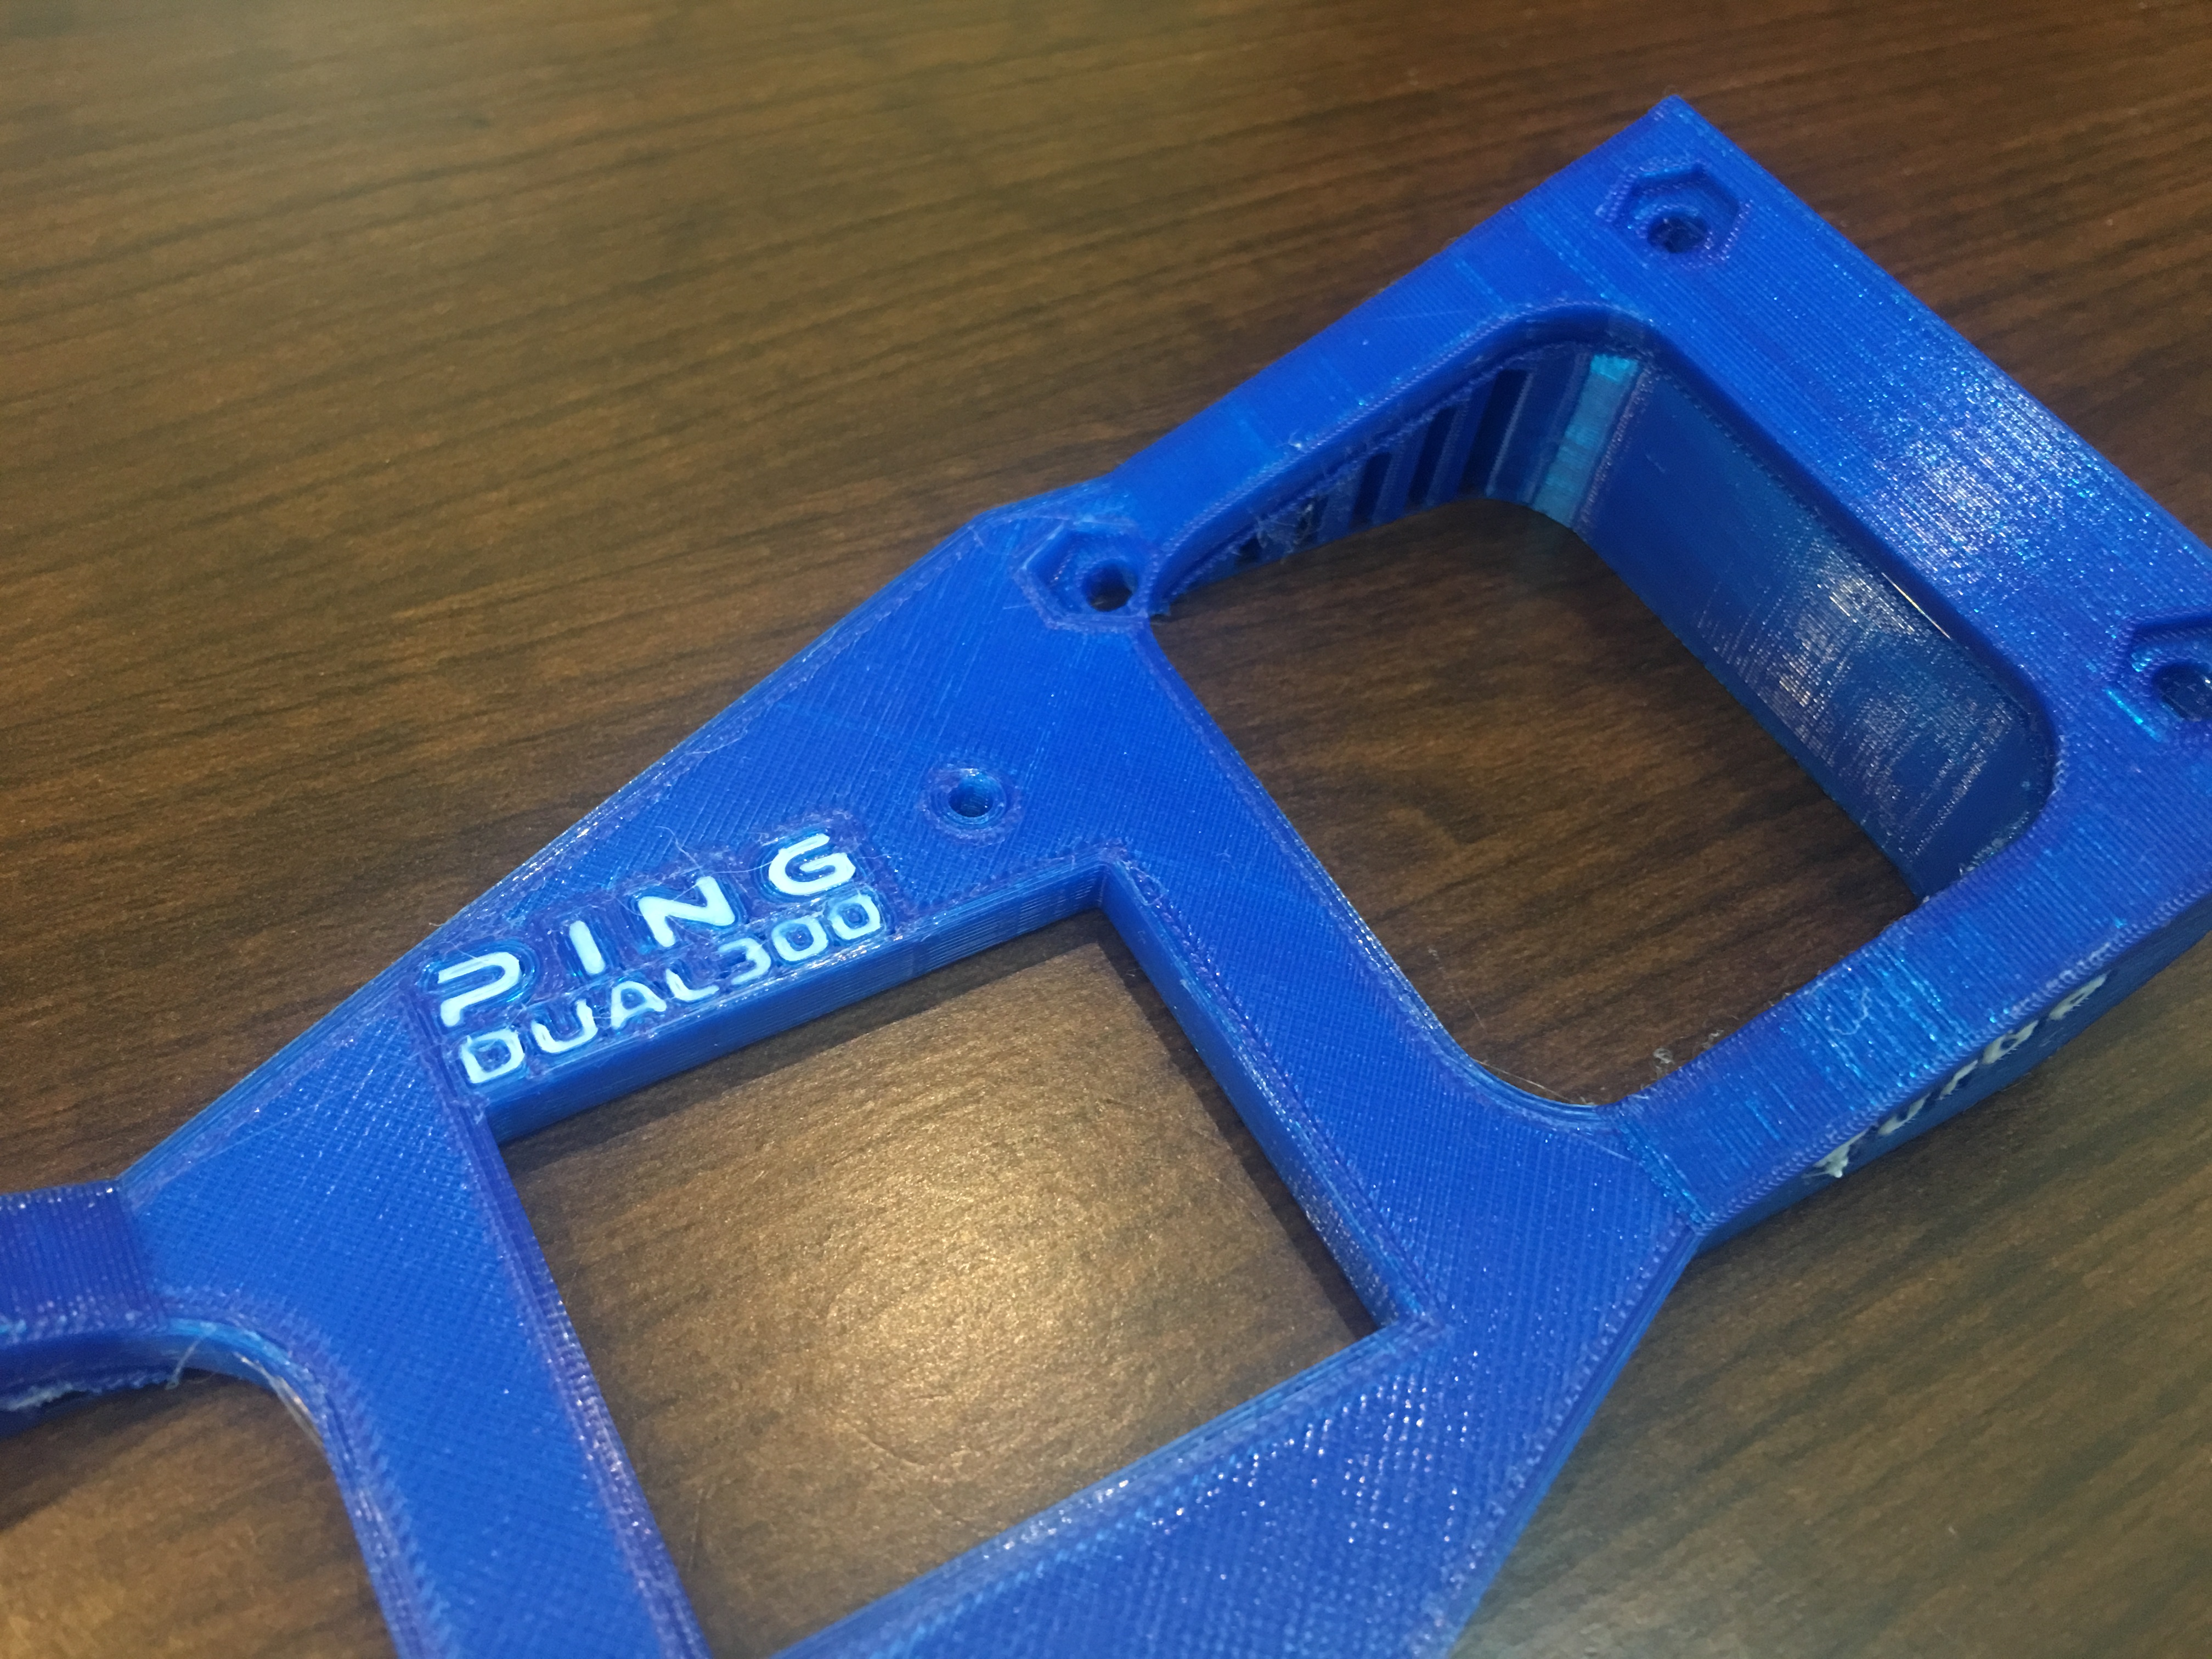 Turbo fan mount and fan duct for Ping DUAL 300 3D printer by